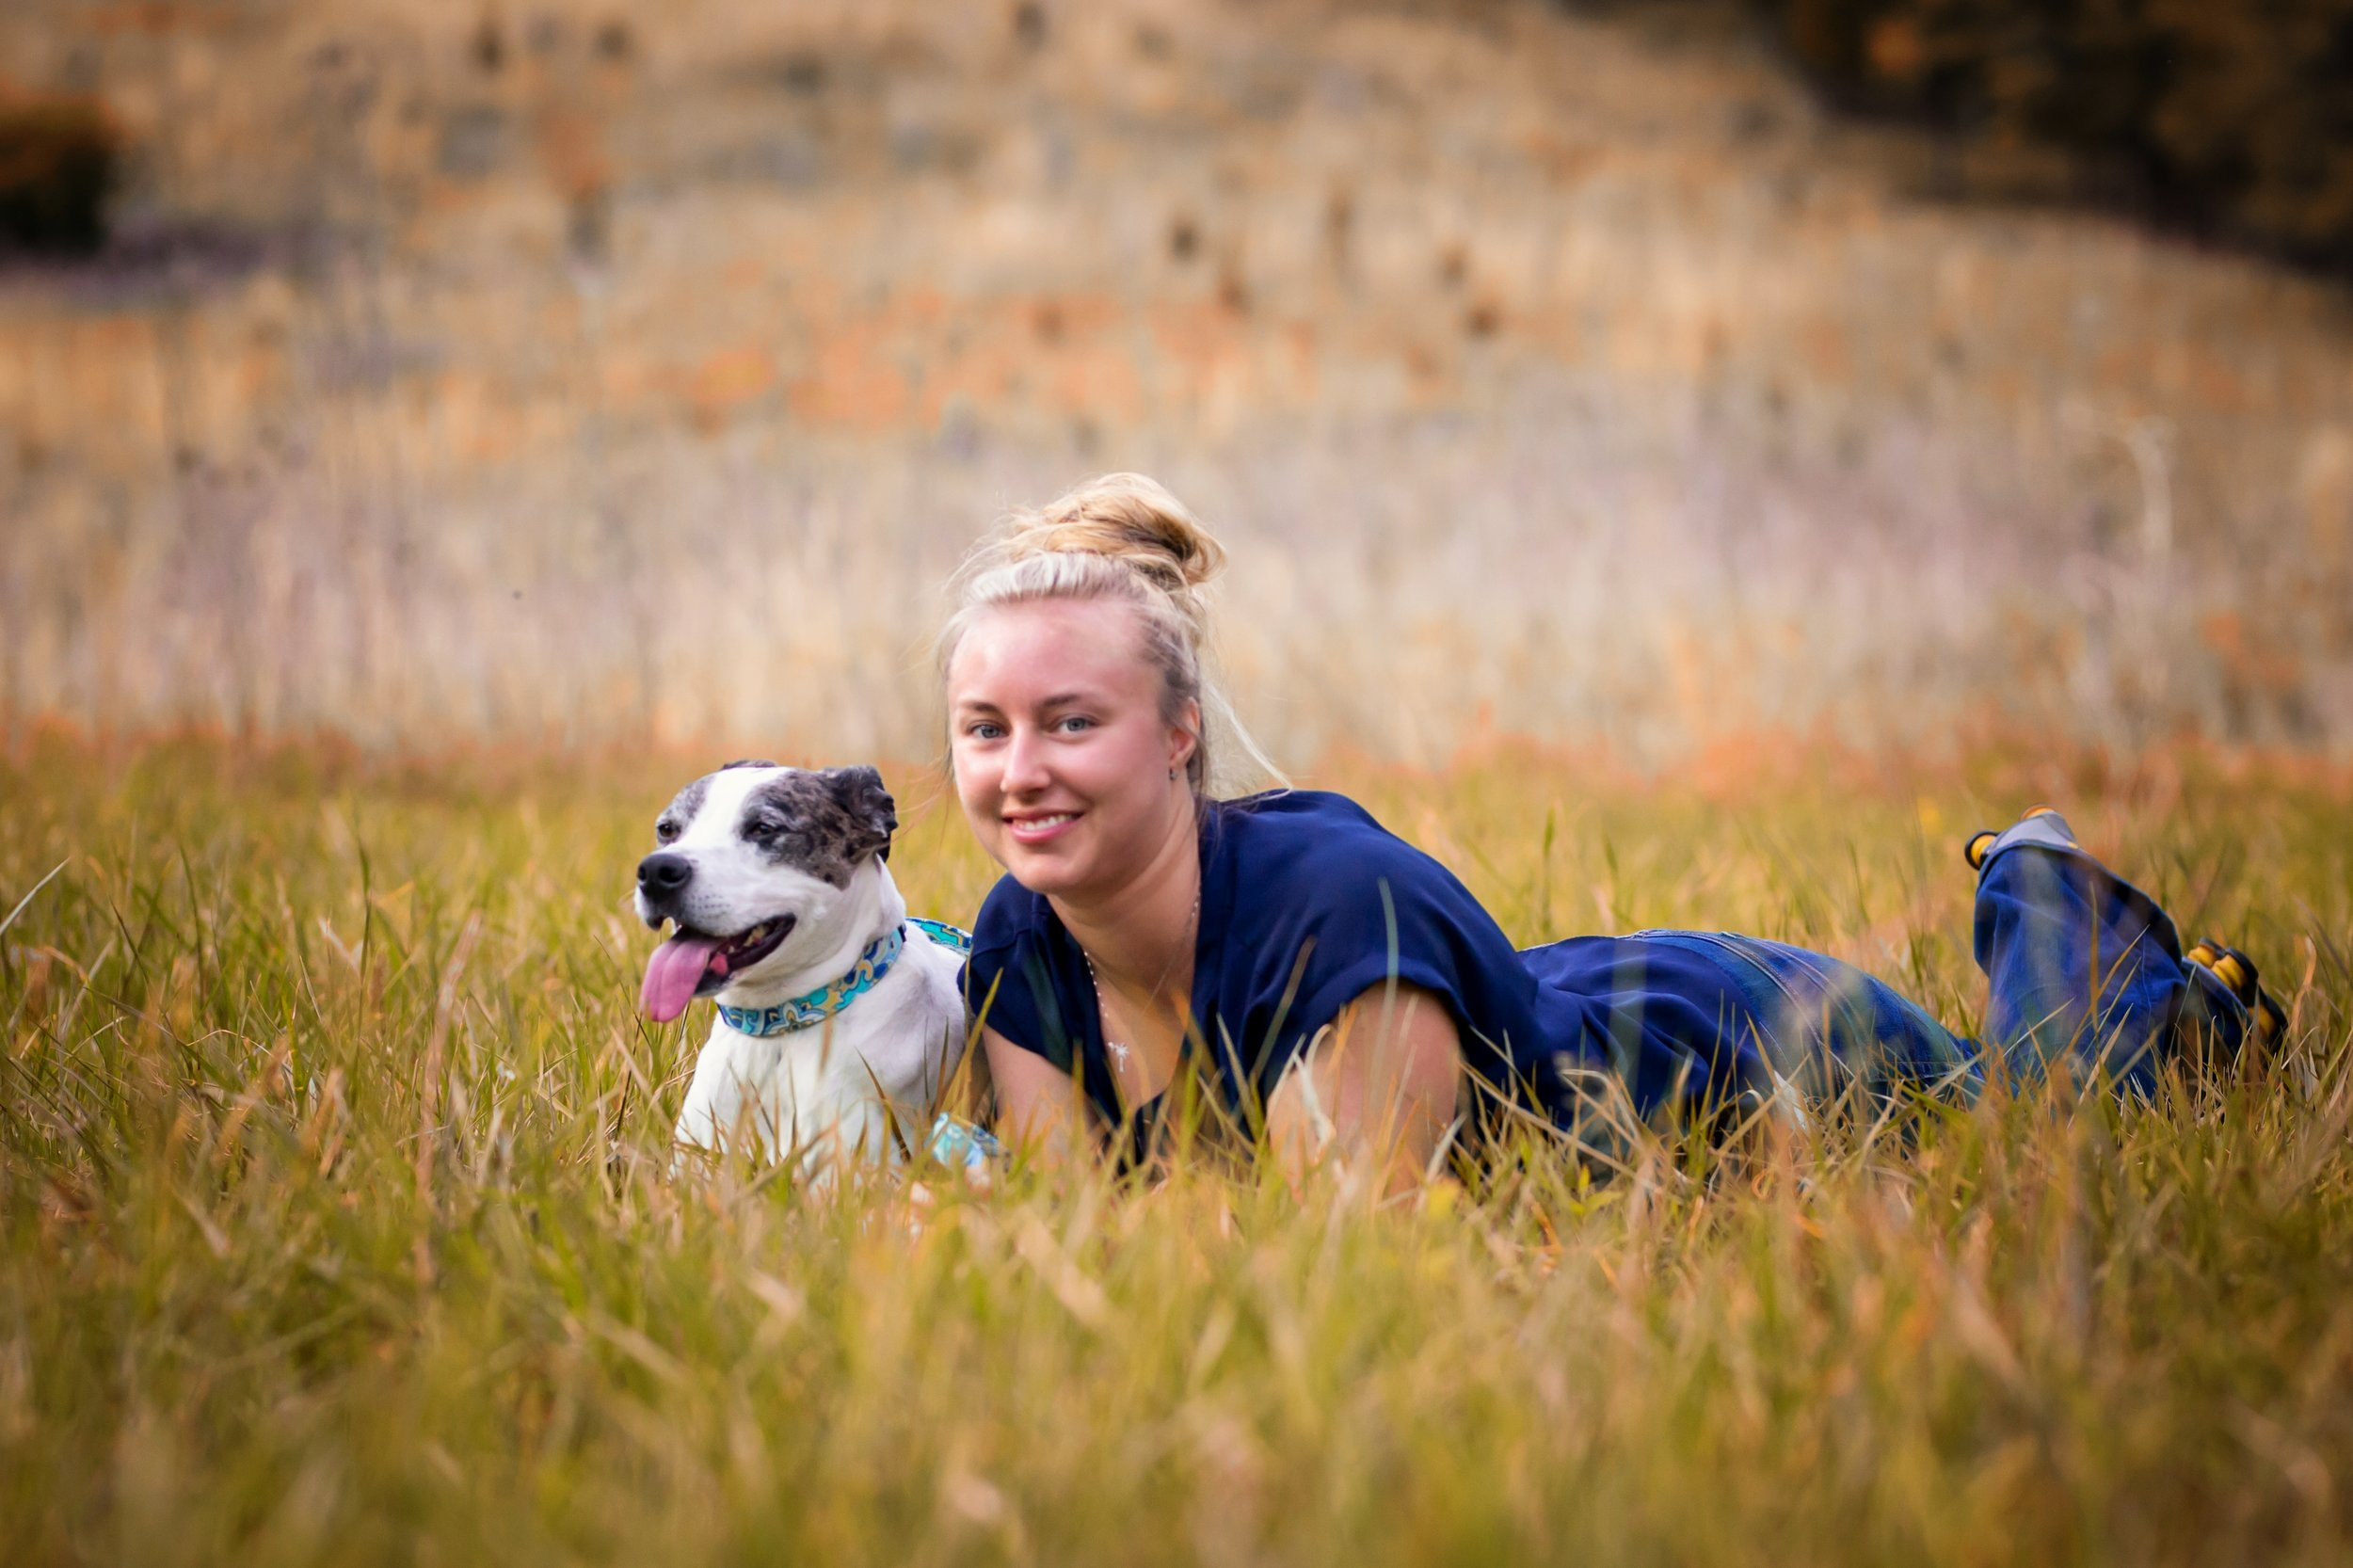 Michelle & Blue - A Love Story in the meadows